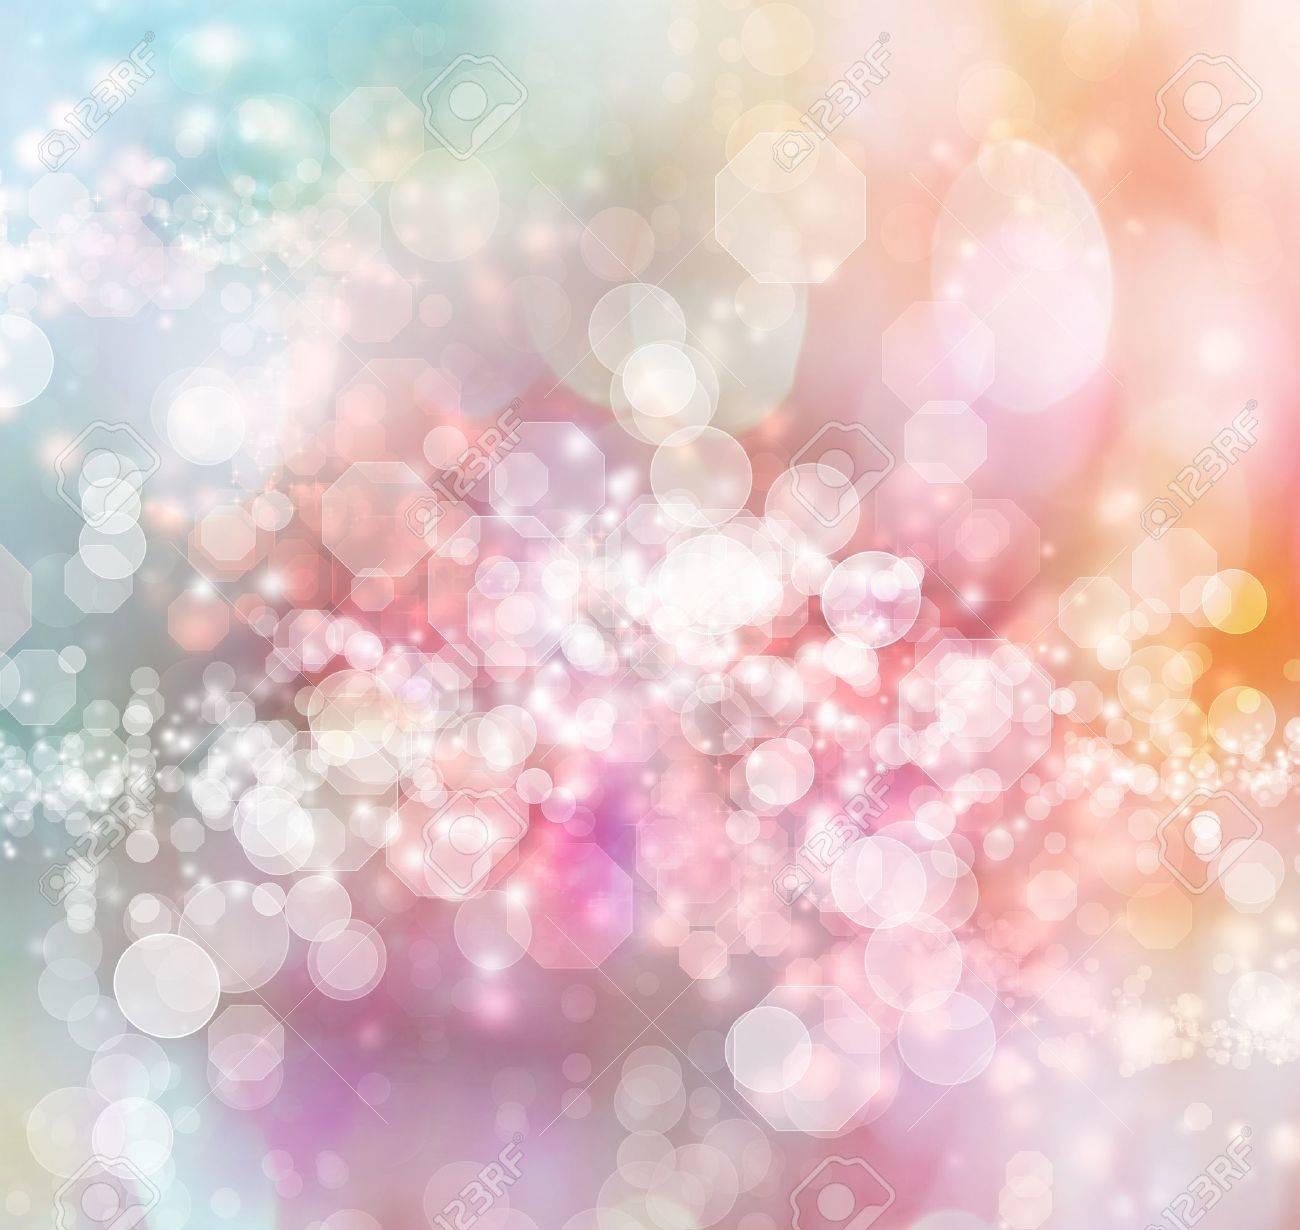 Blue - Pink - Orange Colored Abstract Lights Background Stock Photo - 16386064